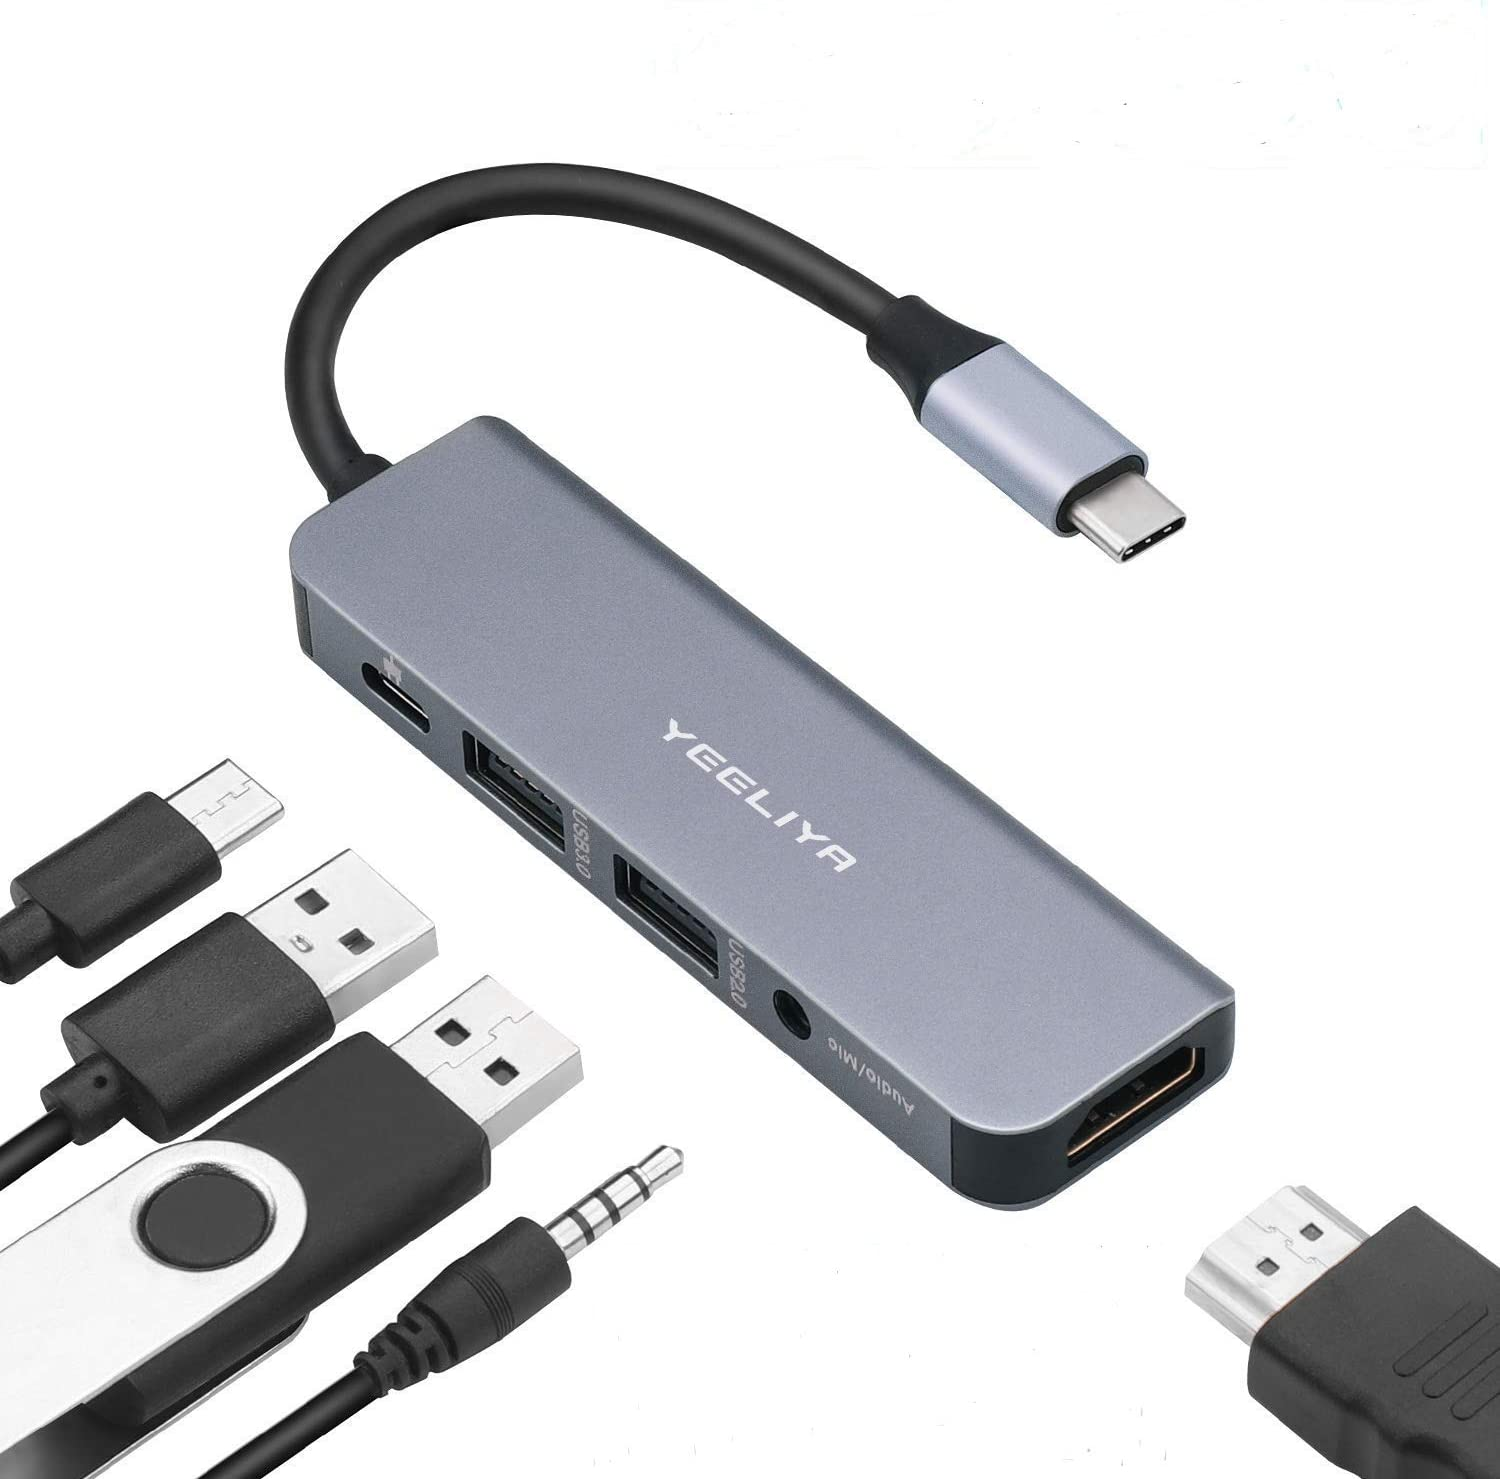 USB C Hub, Type C Adapter 5 in 1 Ports Adapter to HDMI 4k, 3.5mm Audio/Mic Port, USB3.0/USB2.0 Port, Multiport Adapter Thunderbolt 3 Support Dongle for Apple MacBook Pro Huawei Matebook